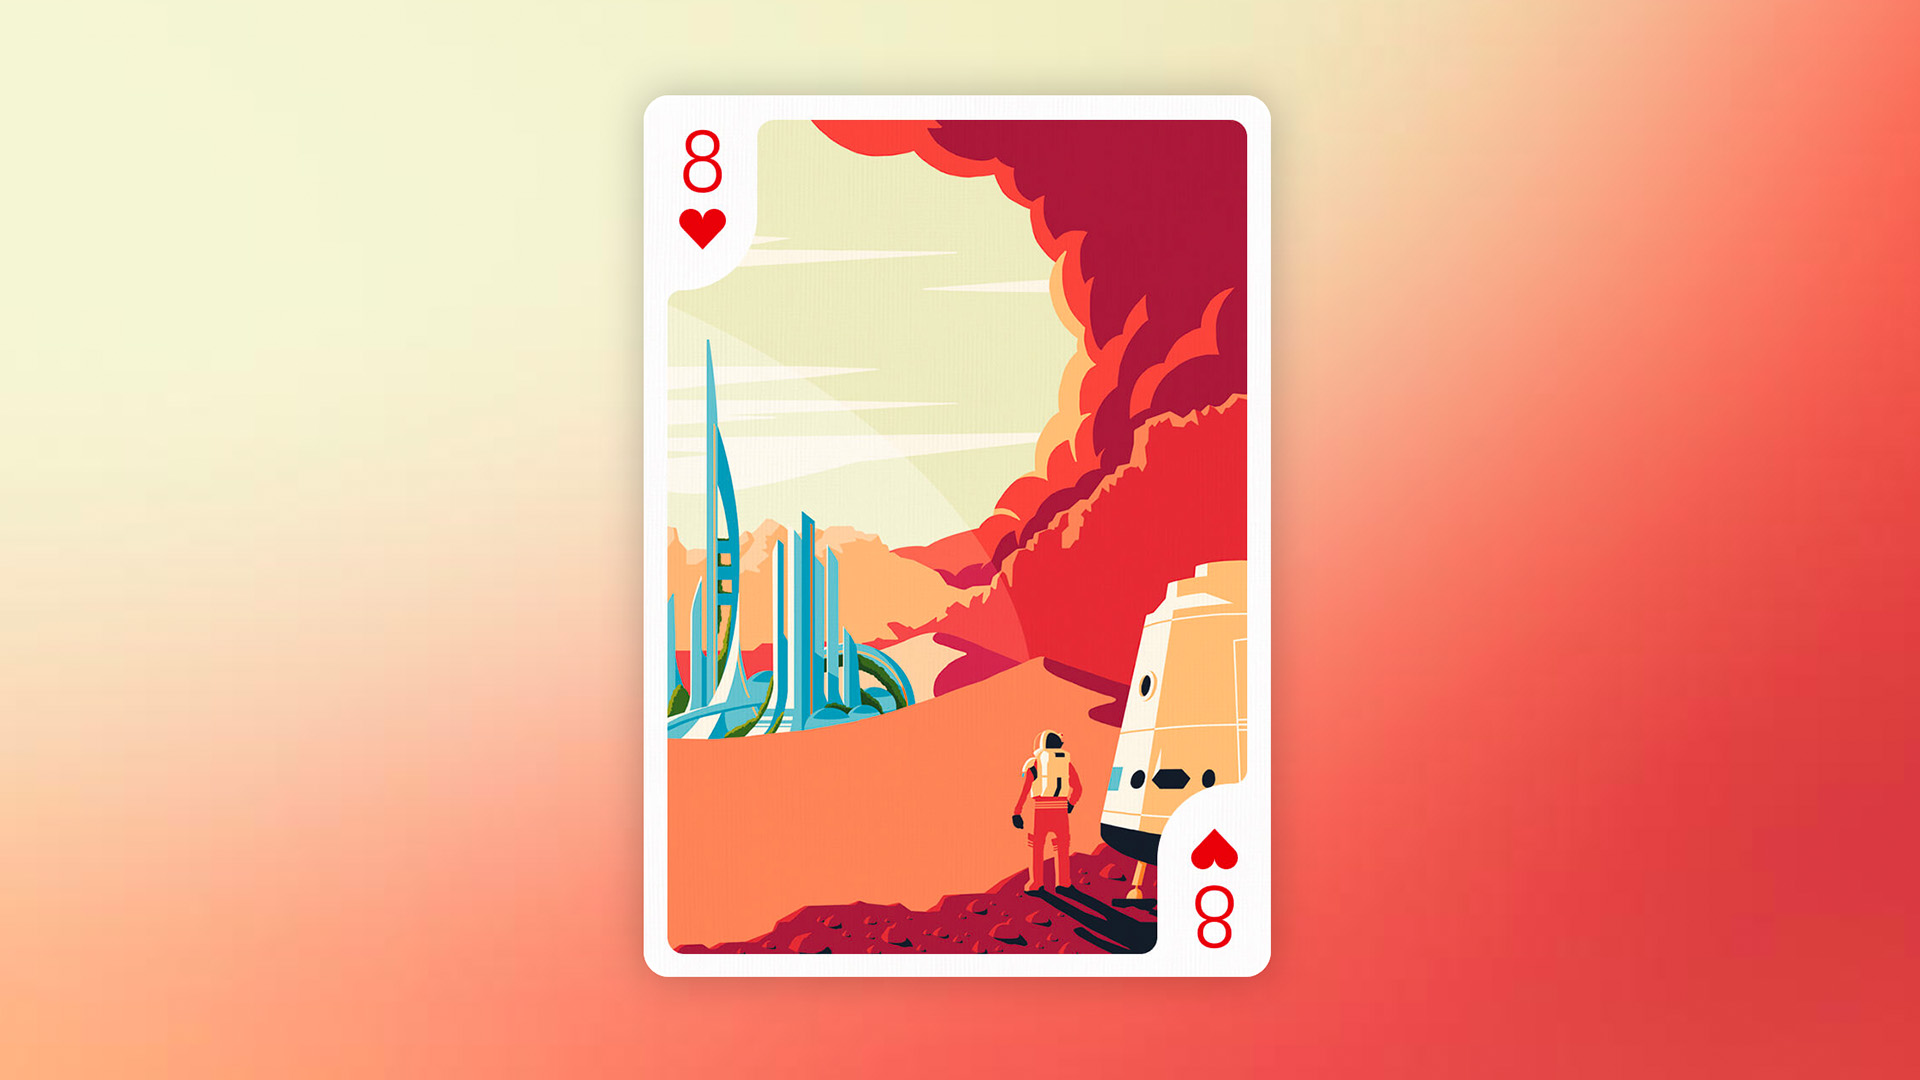 Illustration of an eight of hearts card showing an astronaut just landed on a new planet with a futuristic city on the horizon